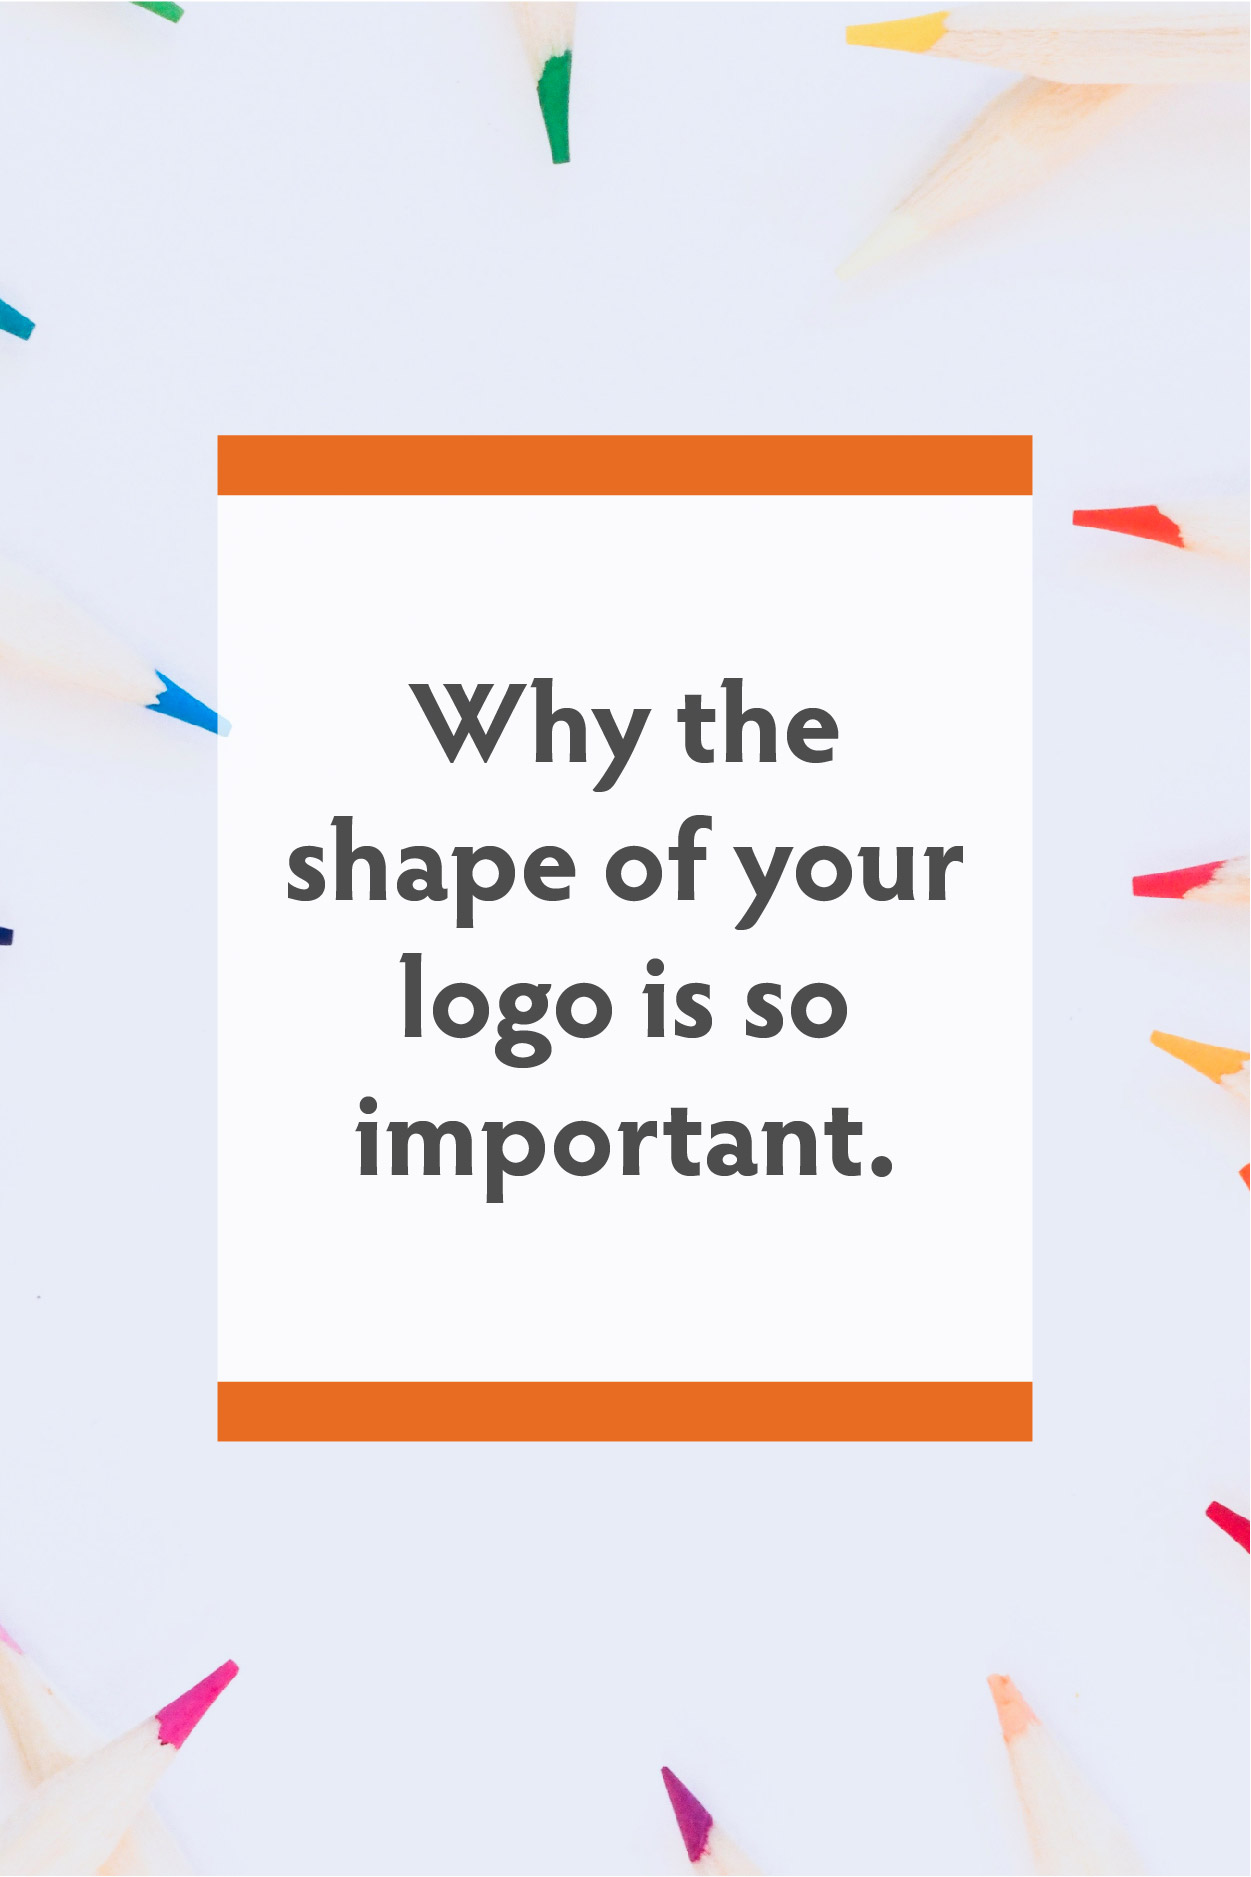 Why the shape of your logo is so important.jpg